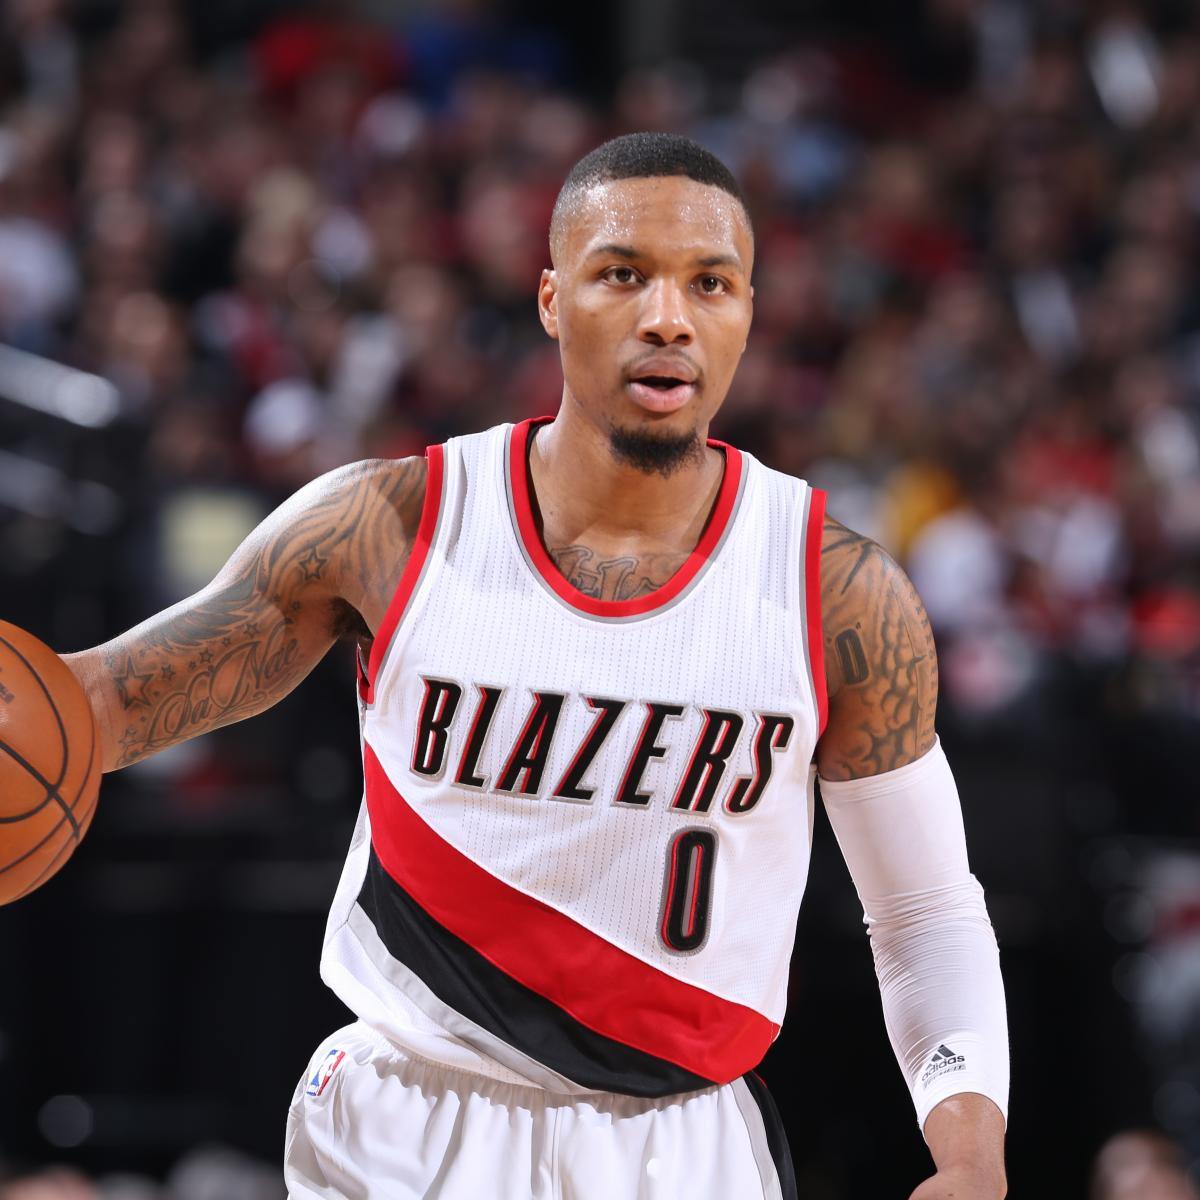 Portland Blazers Last Game: Damian Lillard Injury: Updates On Trail Blazers Star's